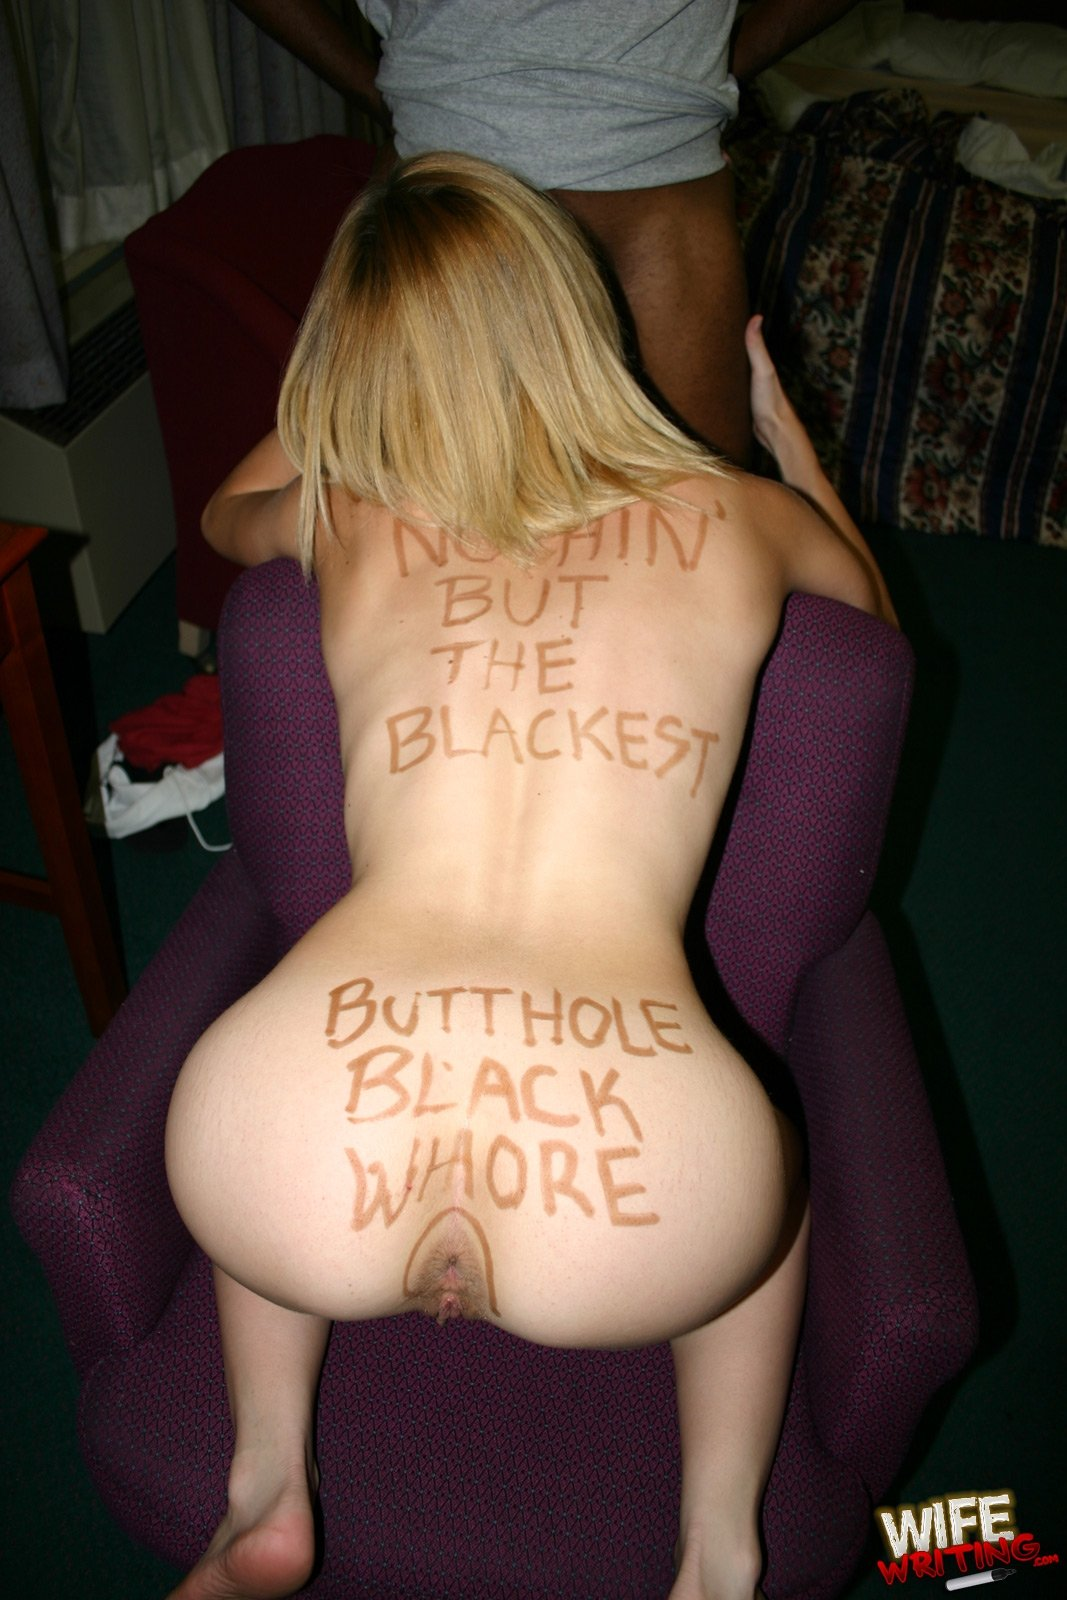 Hd porn brazza mom Agreeable slaves are made to disrobe inside a small cage